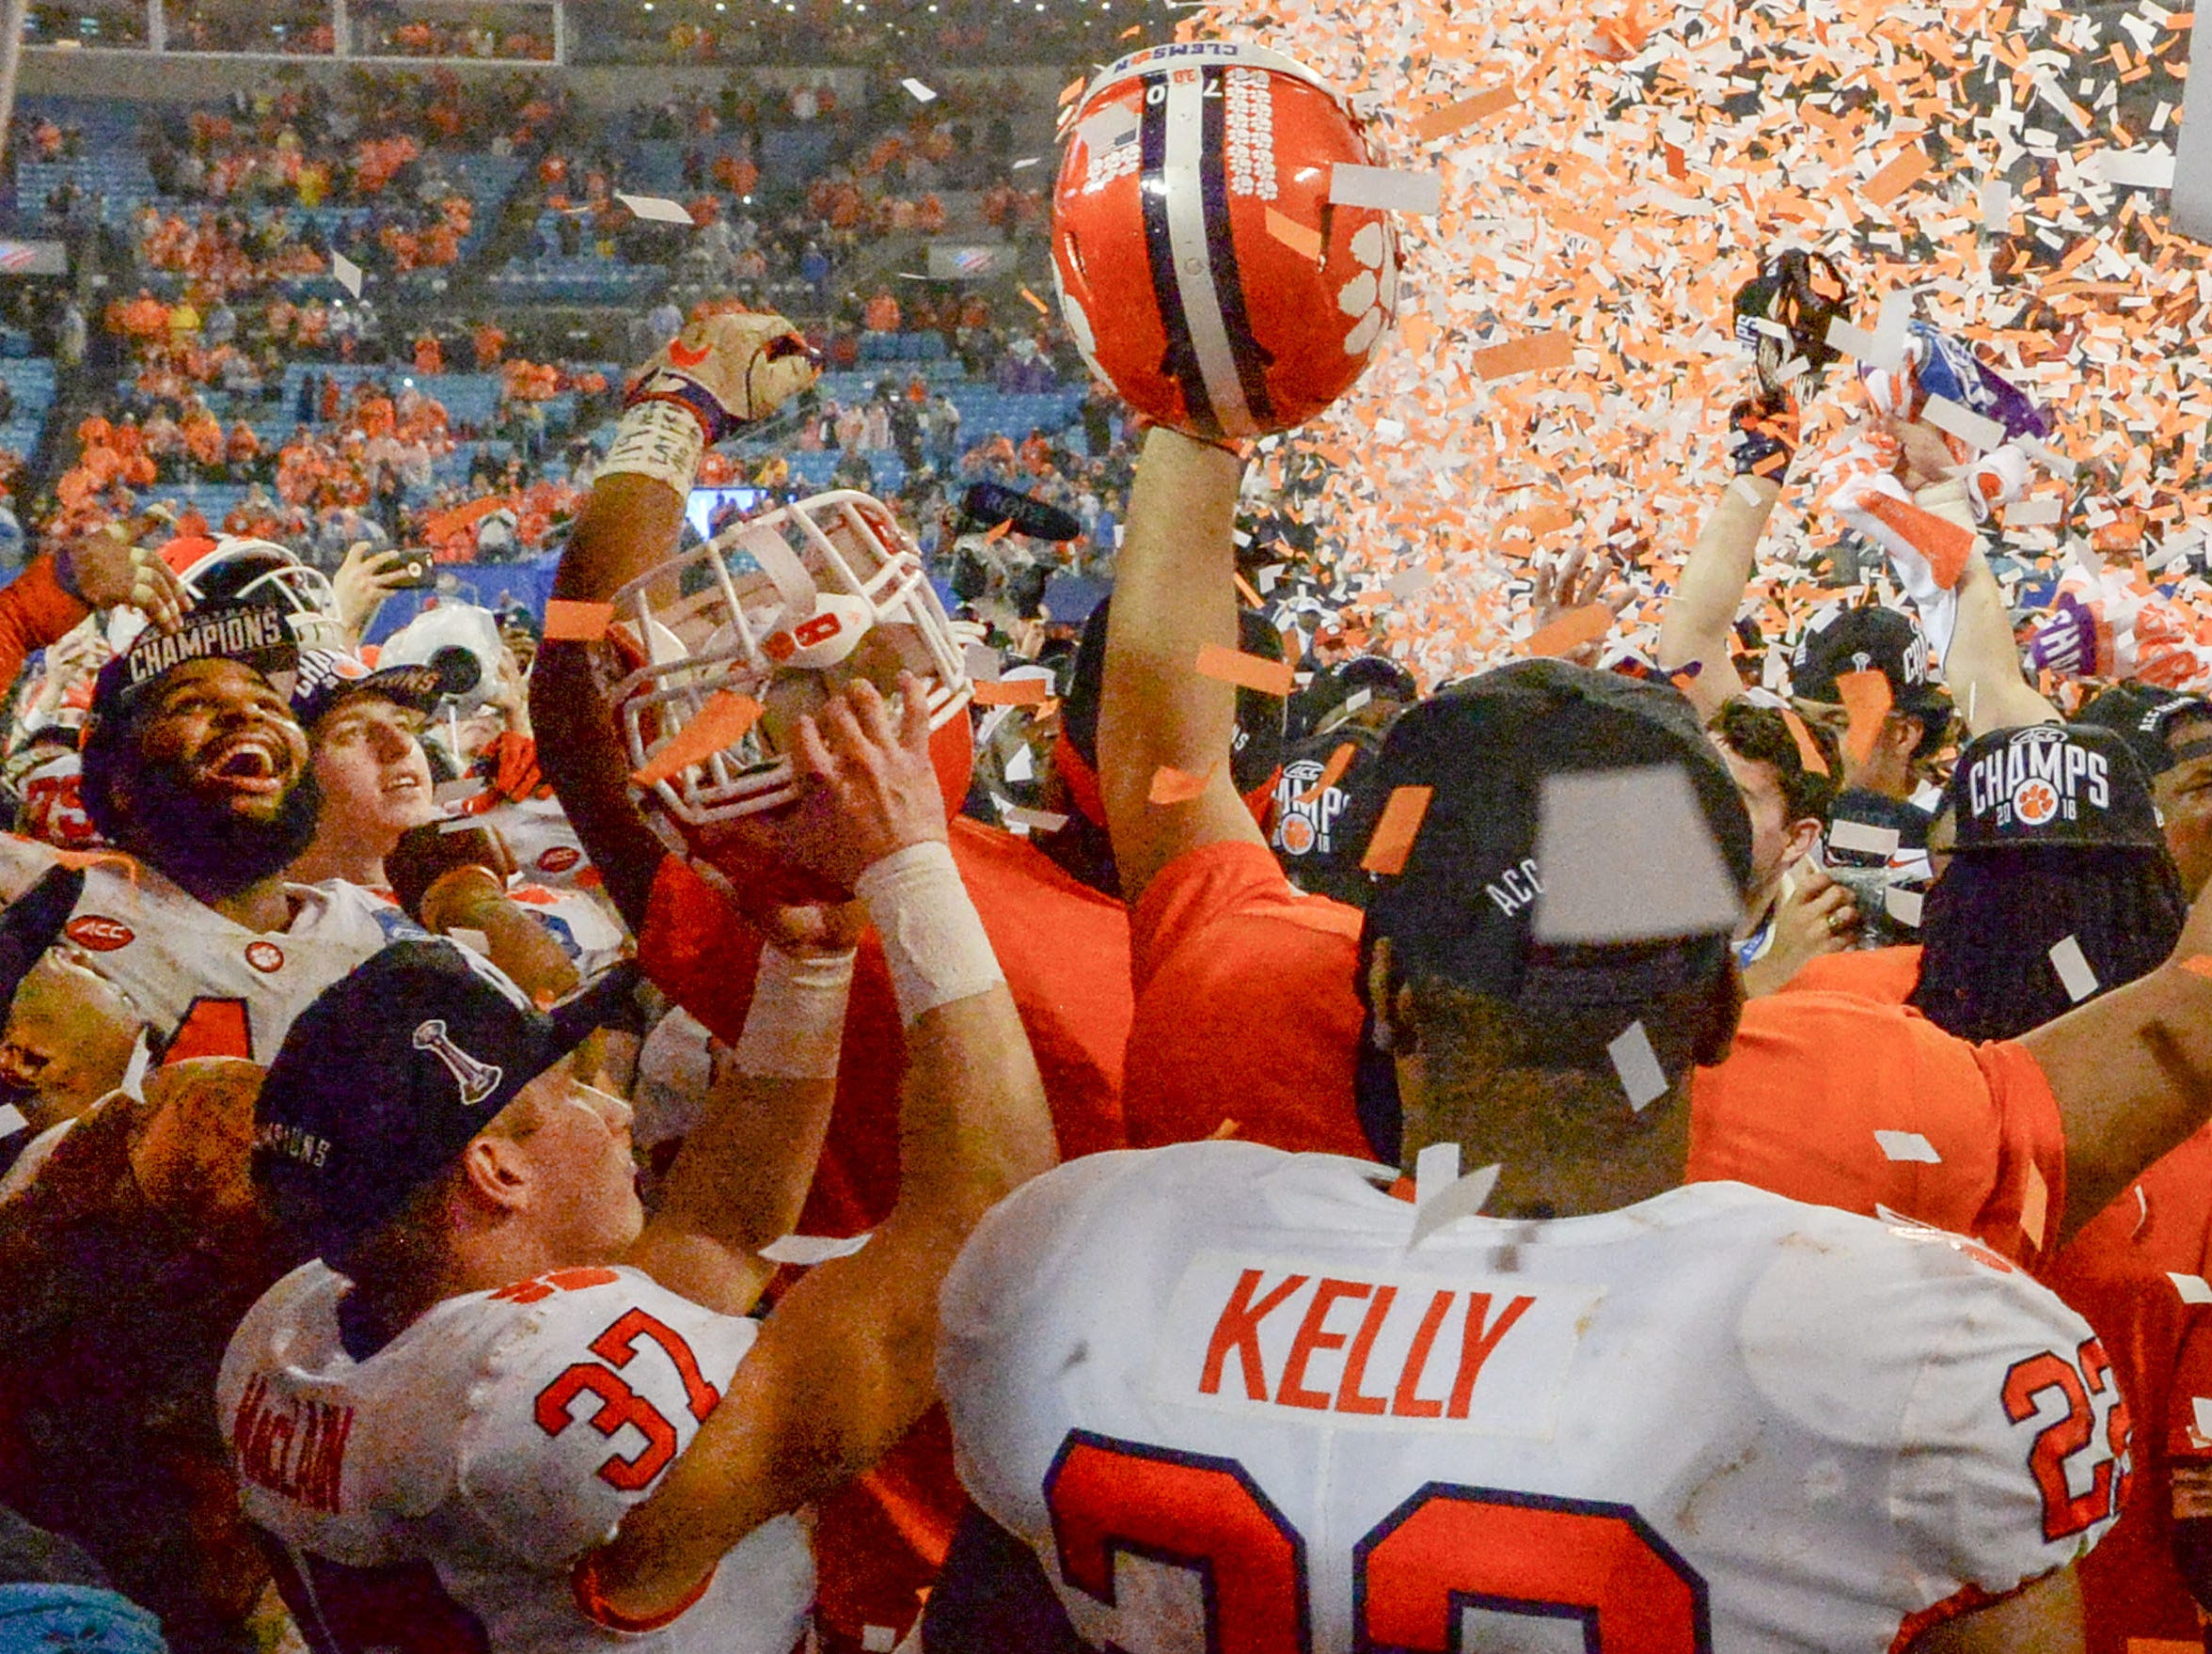 Clemson defensive lineman Christian Wilkins (42), left, team and fans celebrate a 42-10 win over Pittsburgh after the game at the Dr. Pepper ACC football championship at Bank of America Stadium in Charlotte, N.C. on Saturday, December 1, 2018.